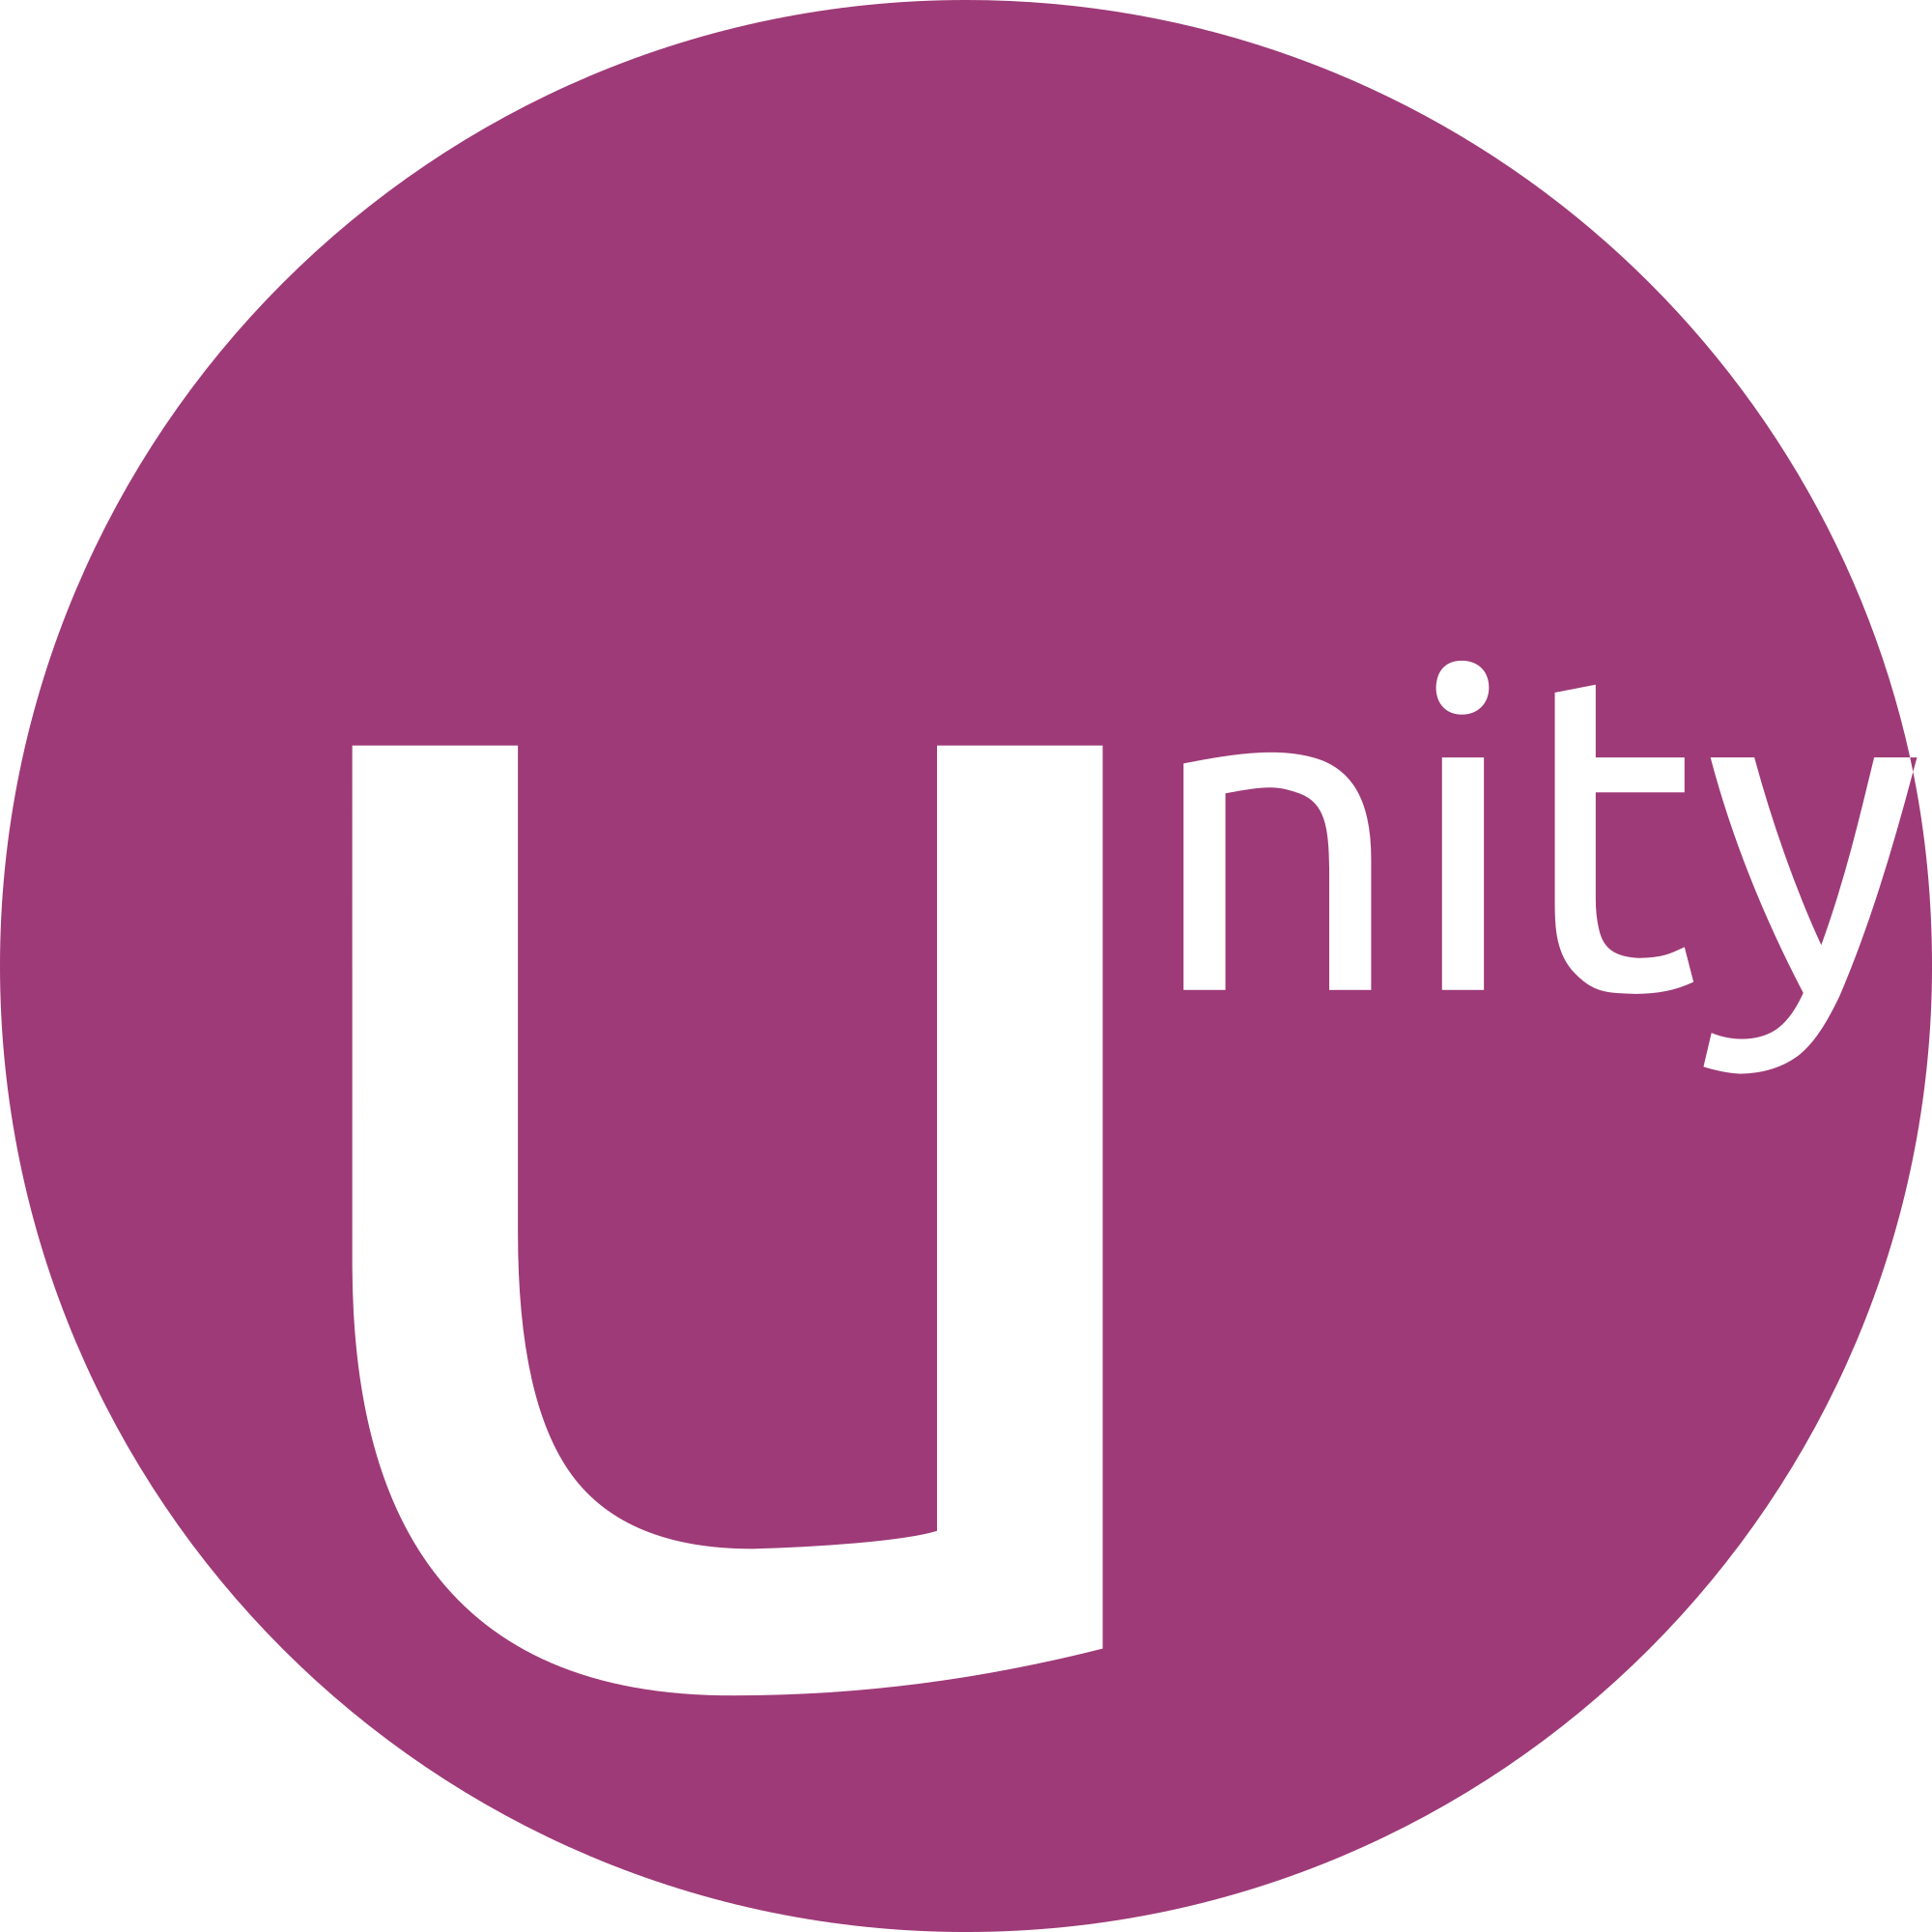 Svg unity vector graphics. File logo wikimedia commons